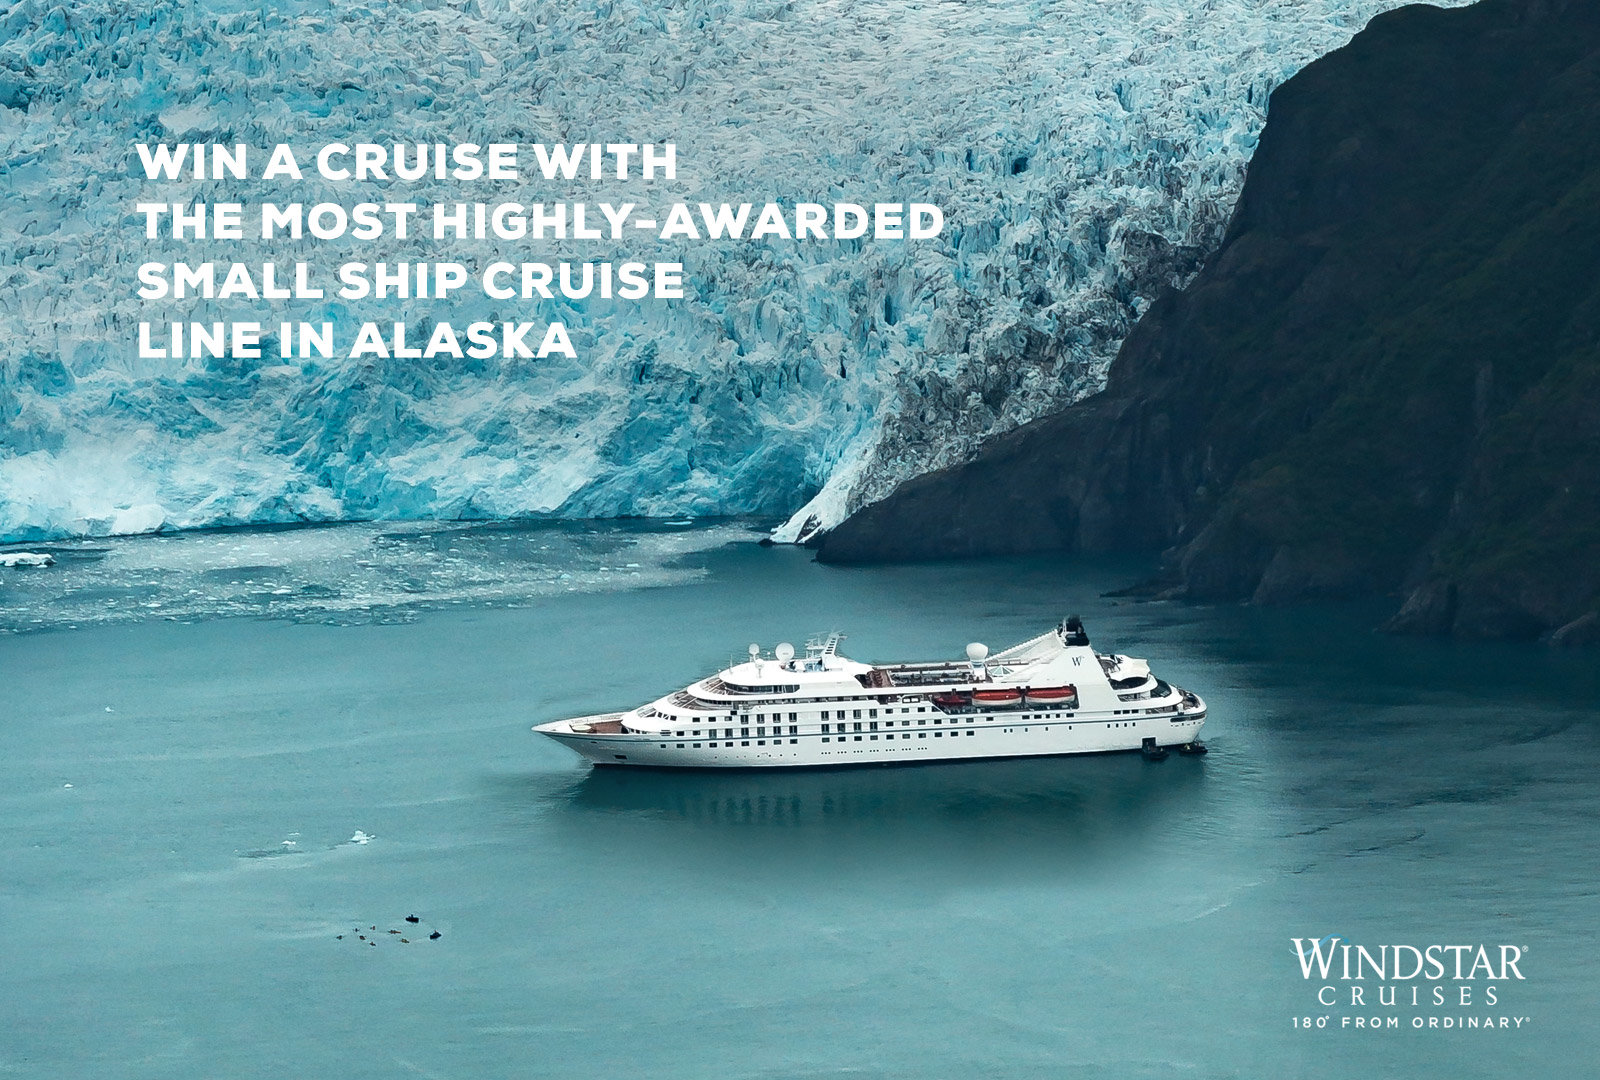 Win an unforgettable Alaska cruise aboard Windstar's Star Legend!